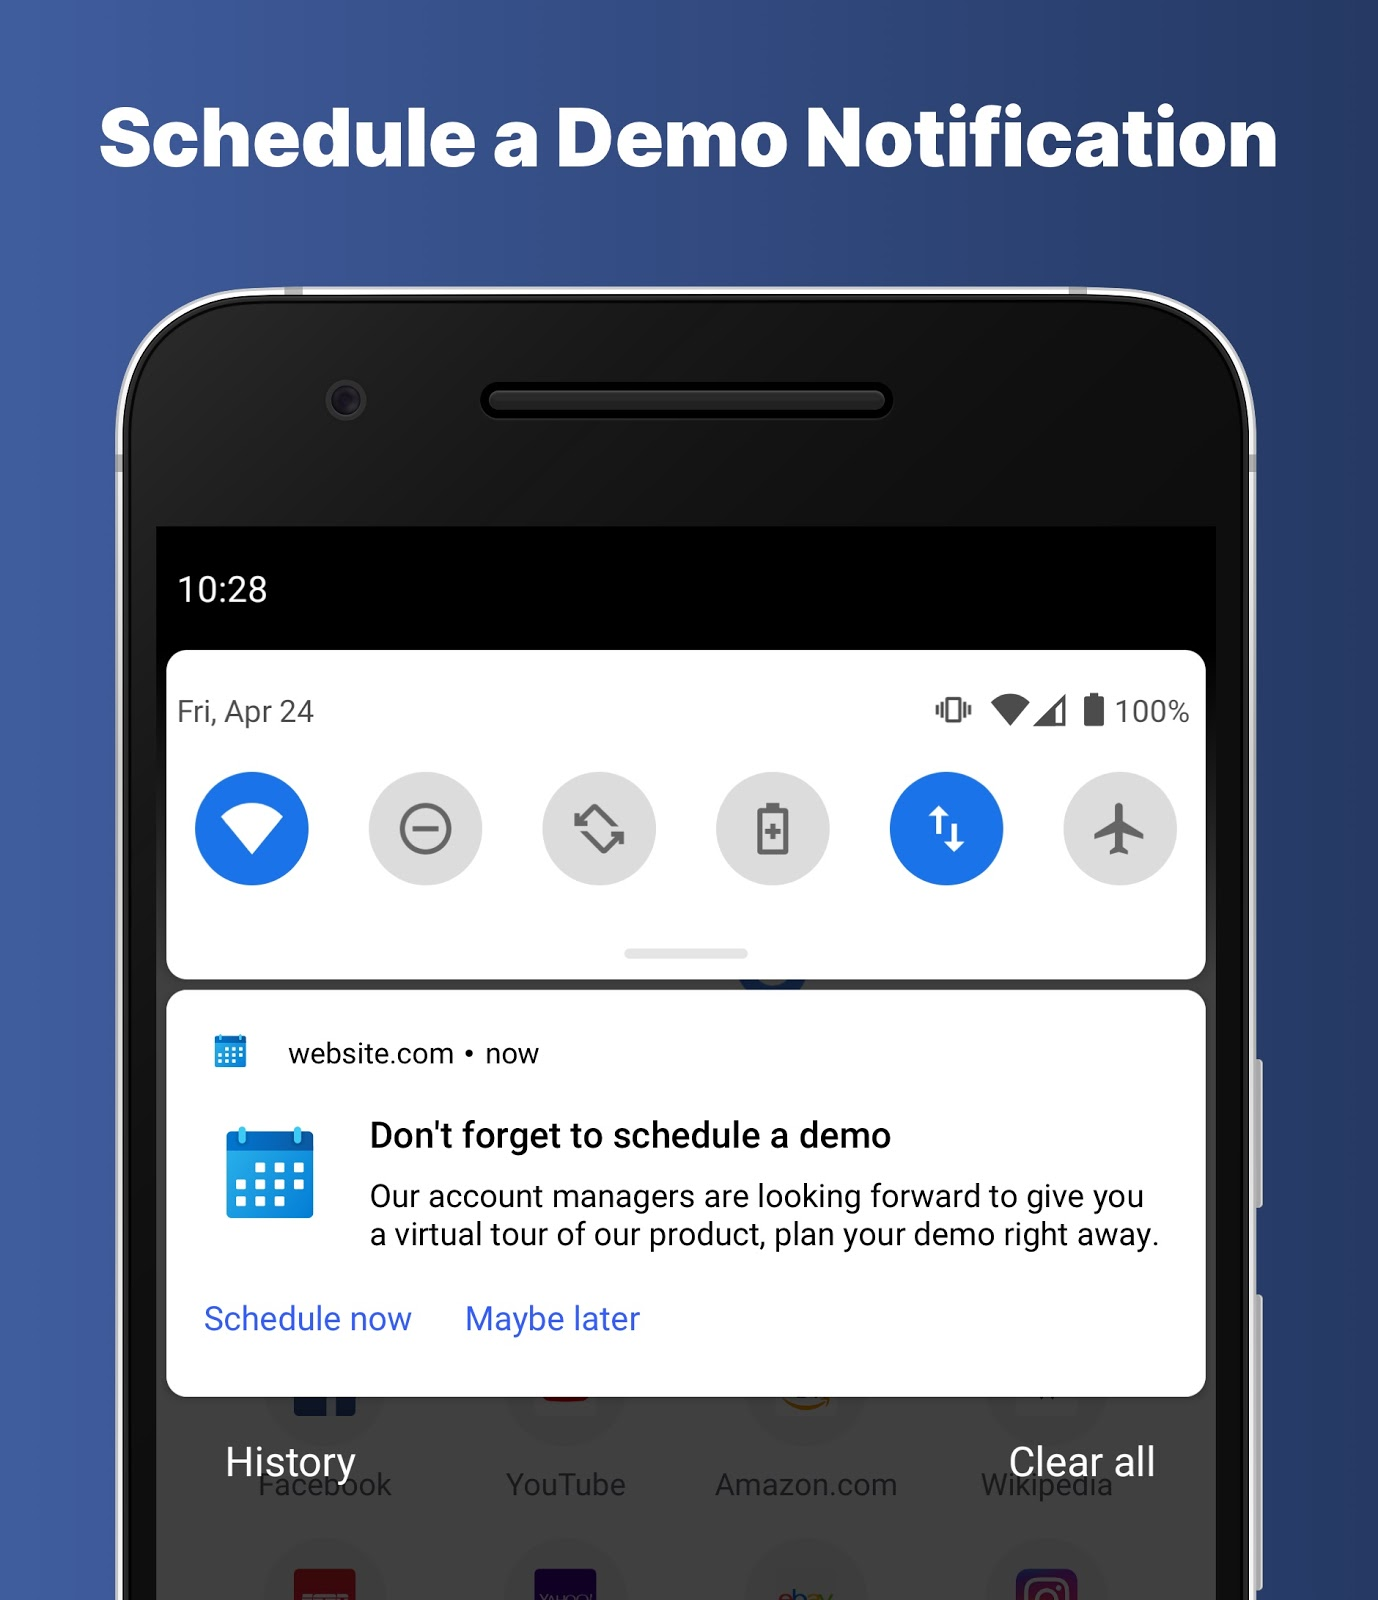 Example of a schedule a demo push notification